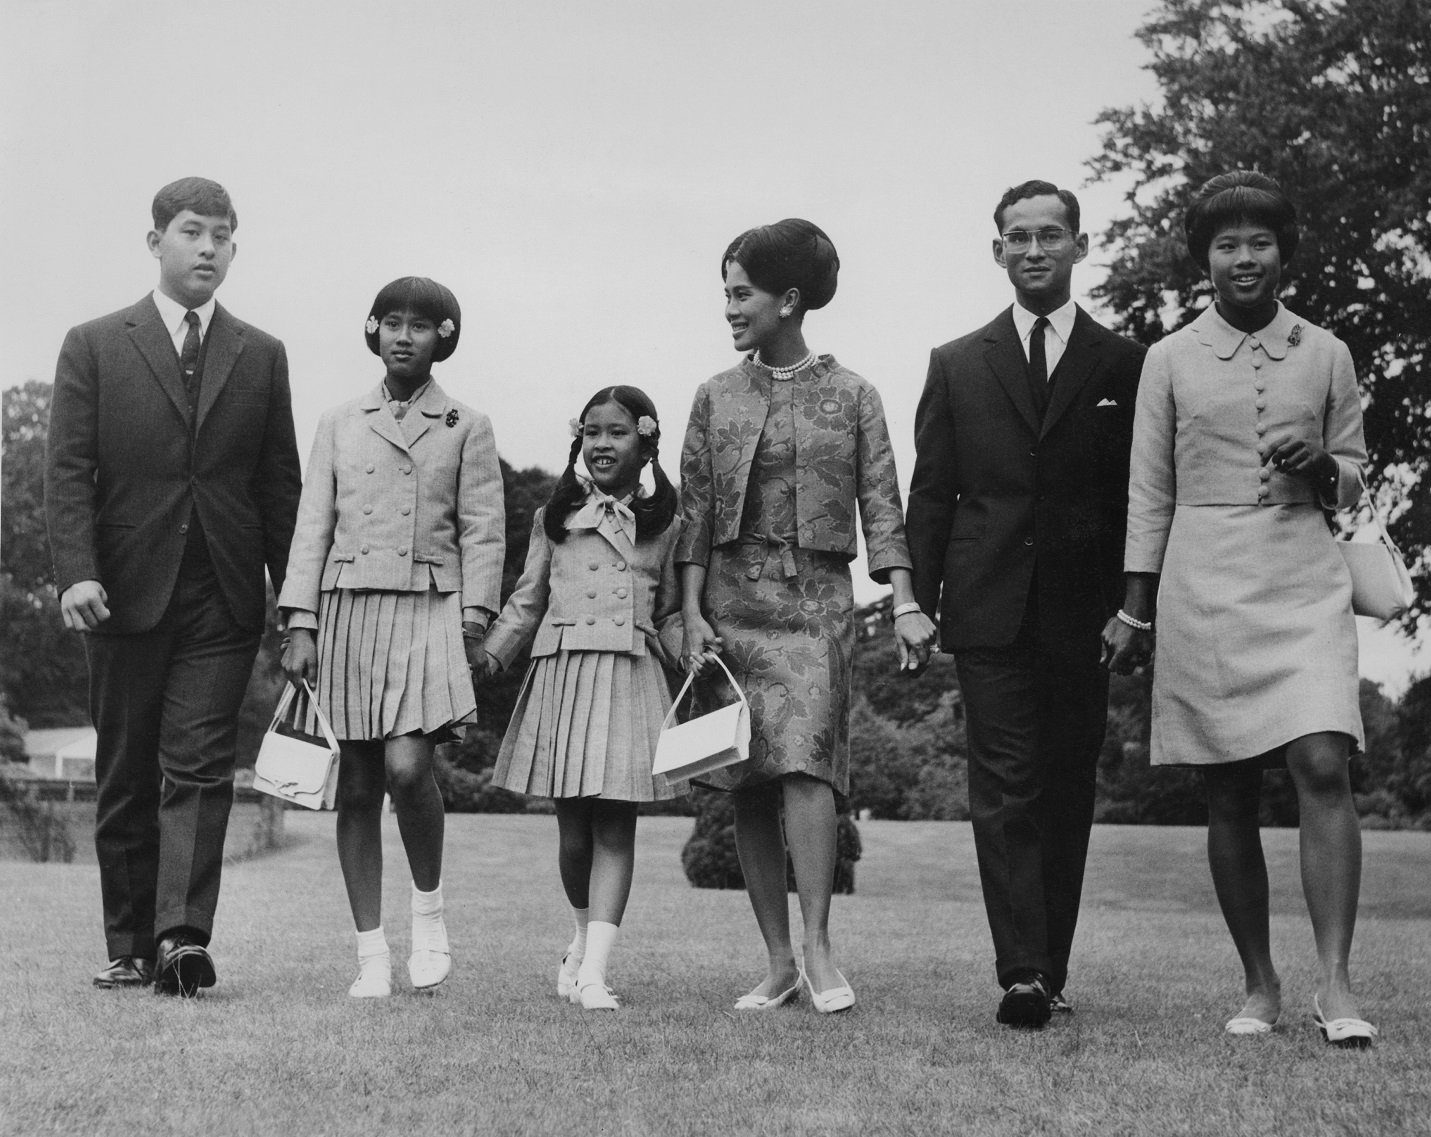 King Bhumibol and Queen Sirikit of Thailand with their children at King's Beeches, their private residence in Sunninghill, Berkshire, 27th July 1966.